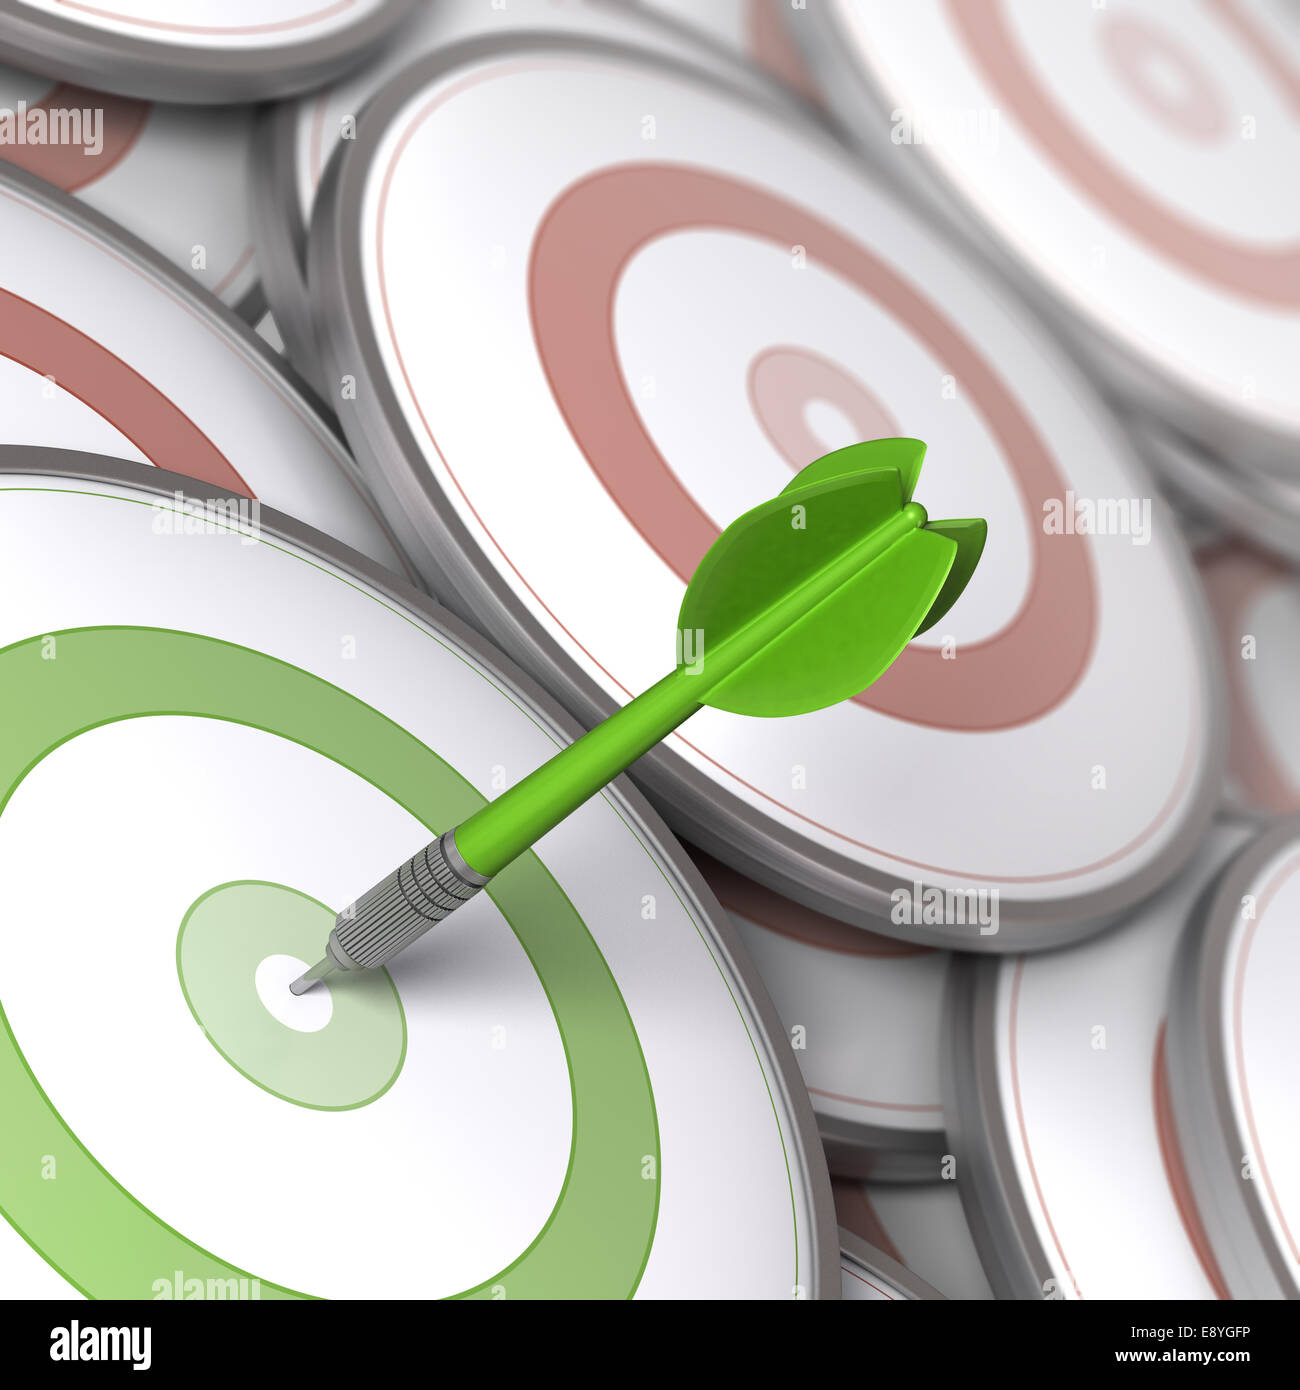 One dart hitting the center of a modern dartboard, targets concept to illustrate Business options or Marketing strategies. - Stock Image